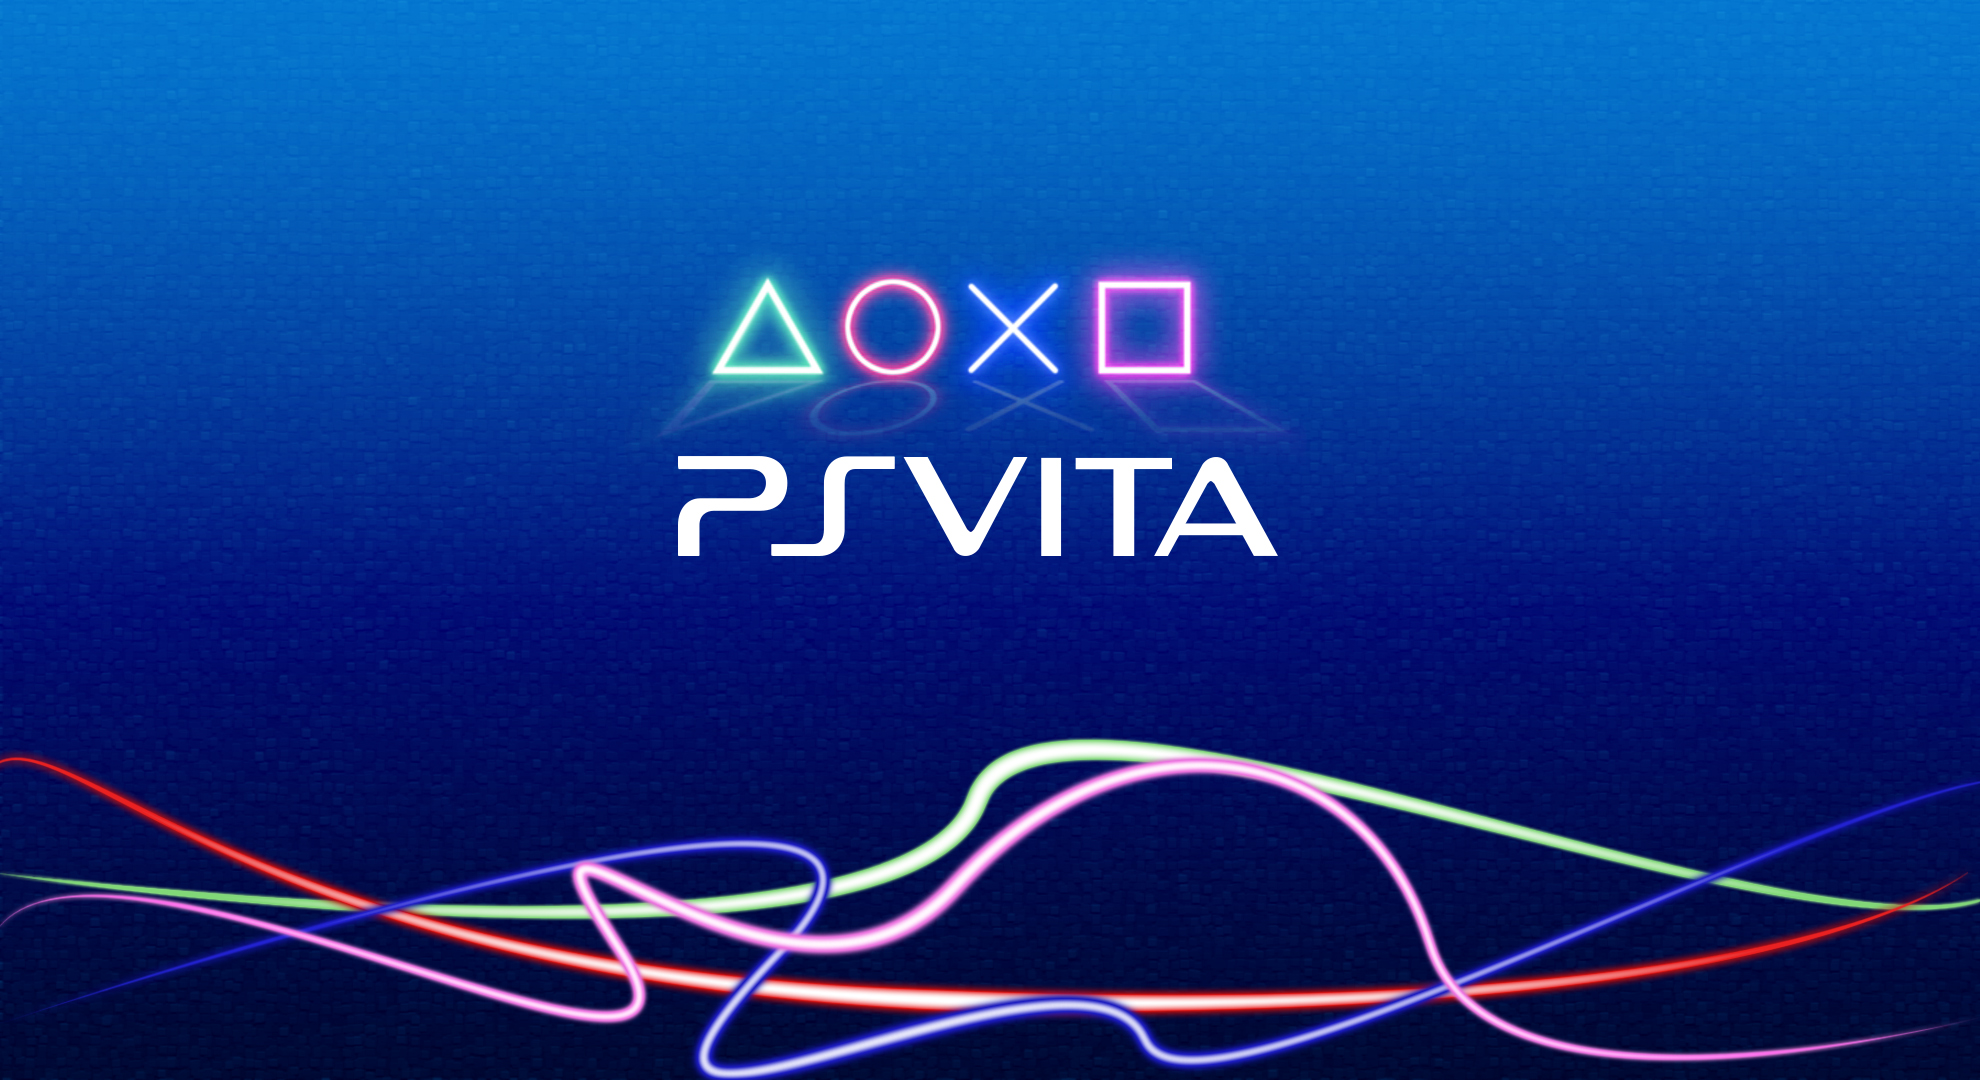 ps vita wallpapers high quality | download free